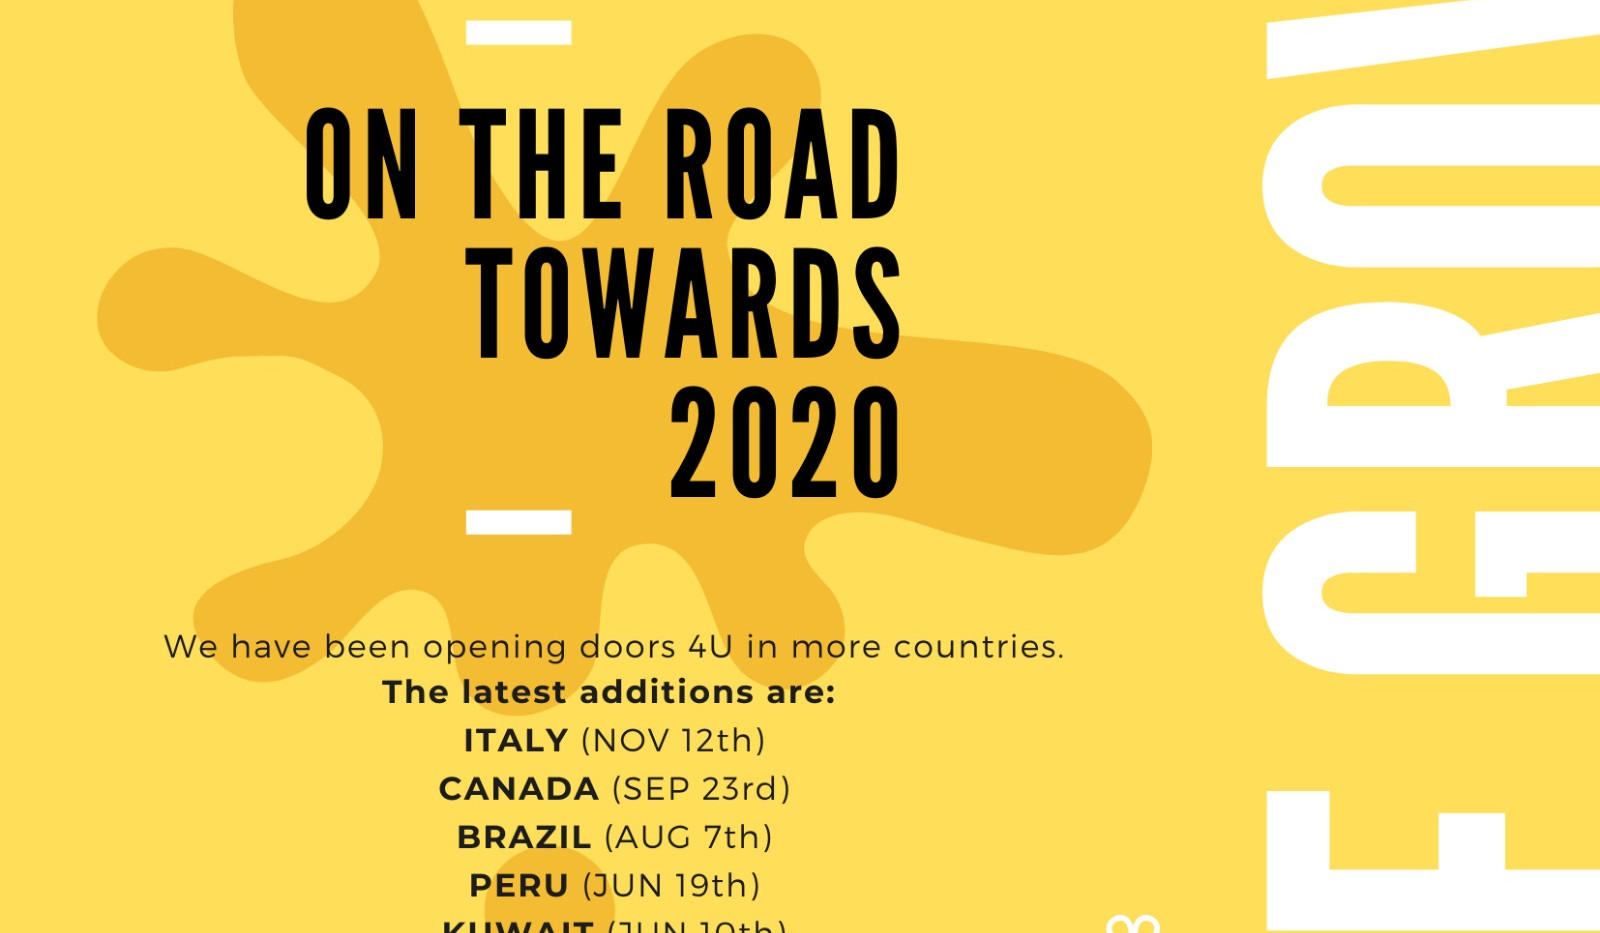 On the road towards 2020